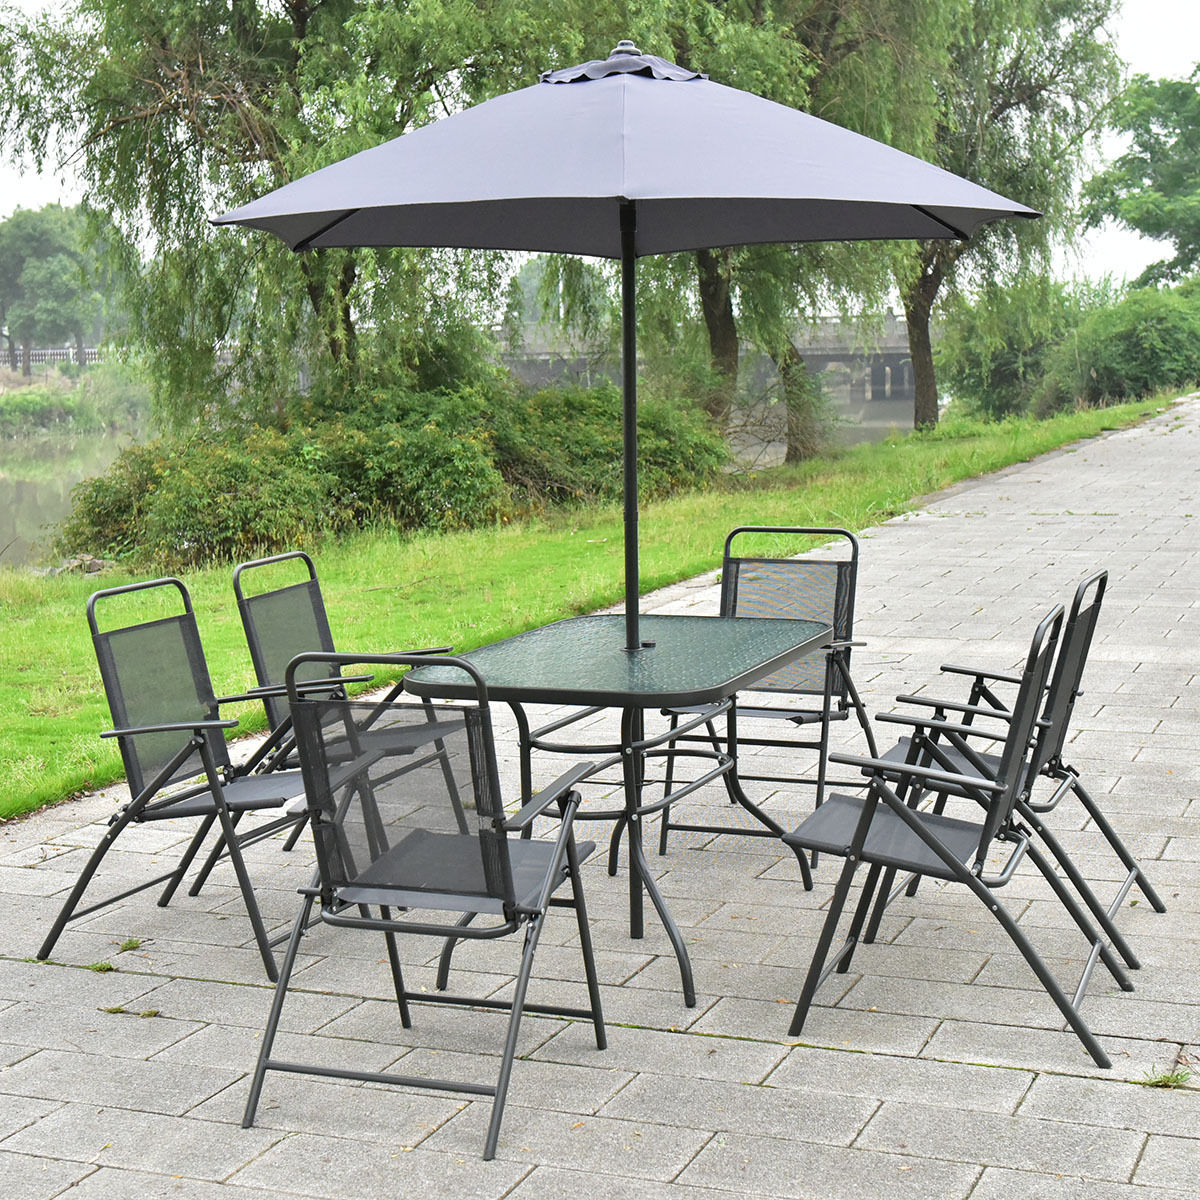 Costway 8PCS Patio Garden Set Furniture 6 Folding Chairs Table with Umbrella Gray